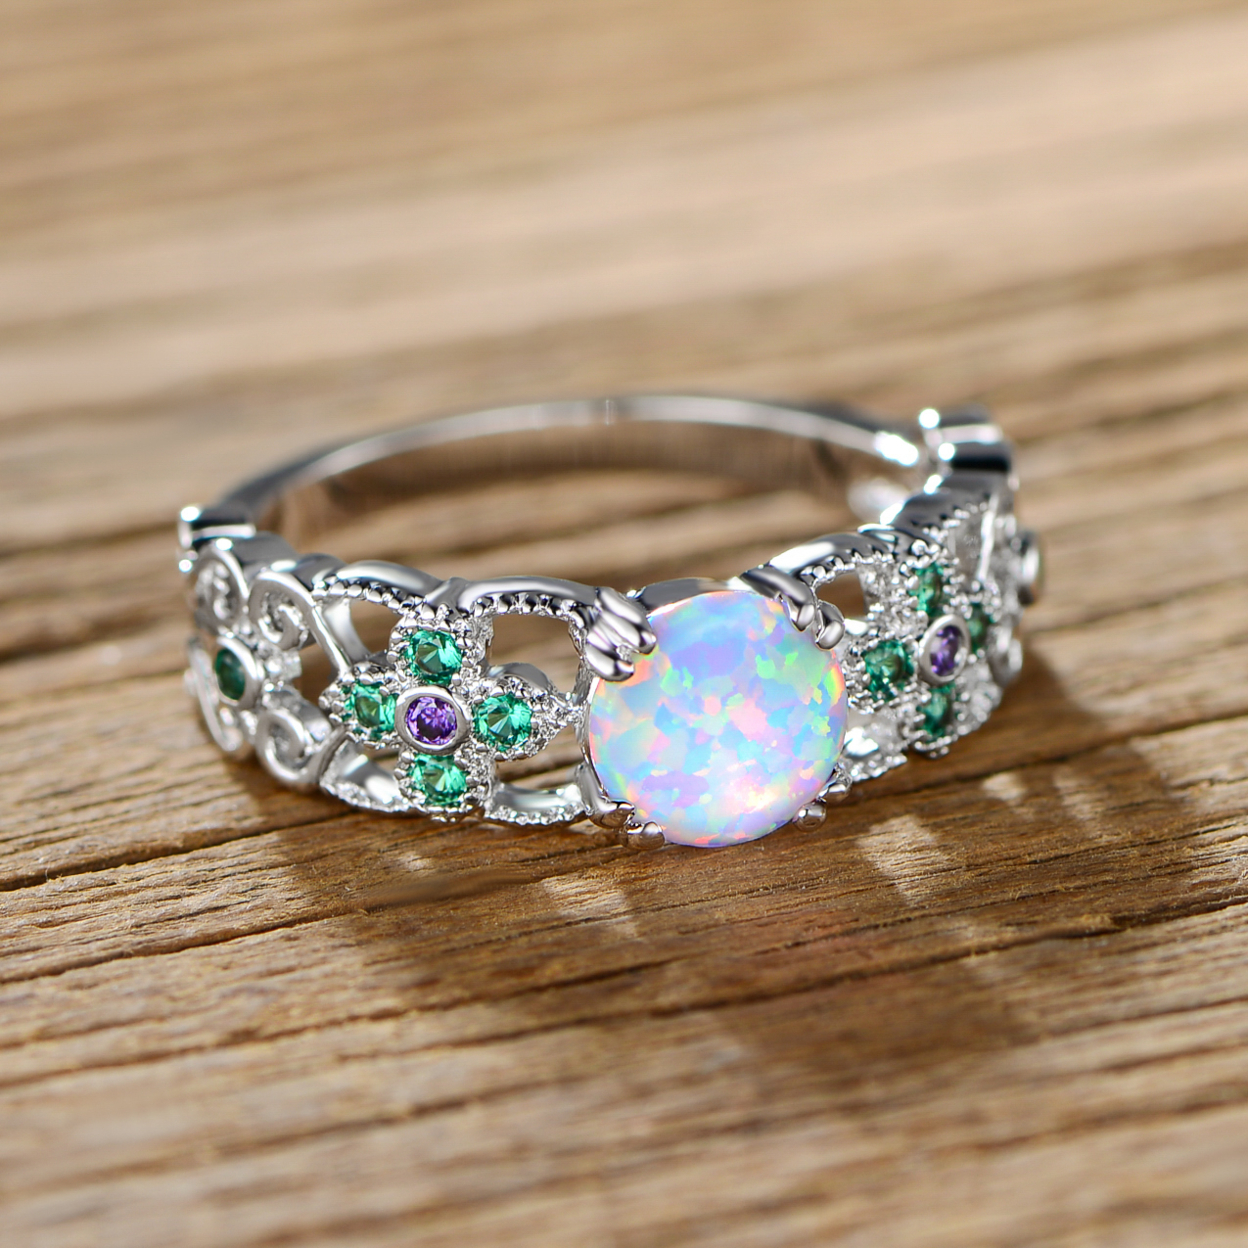 Rhodium Plated White Fire Opal With Lab-created Amethyst & Emerald Flower Ring Size 5